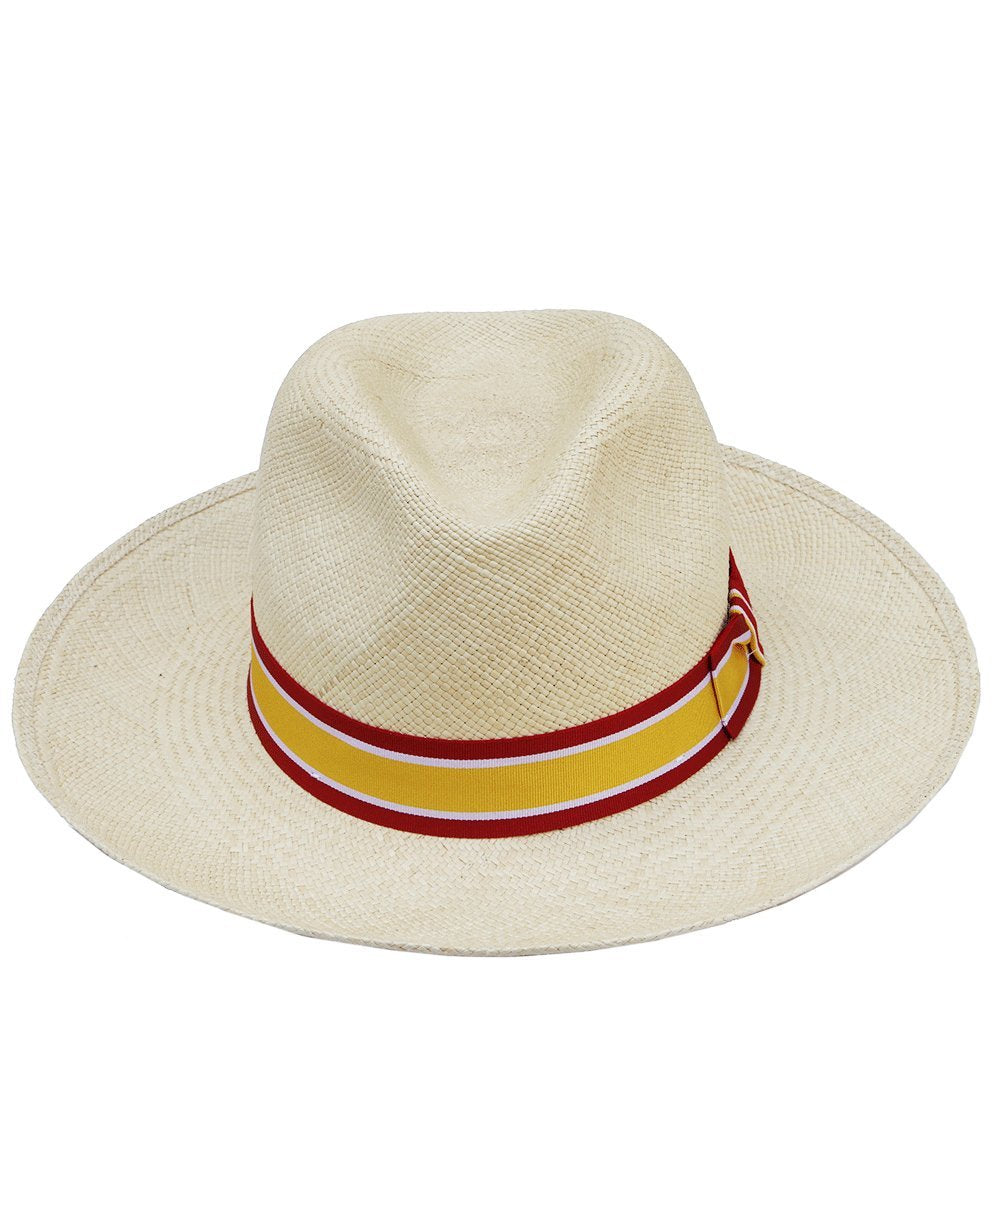 Goodwood Racecourse Lennox Red Yellow Striped Panama Hat